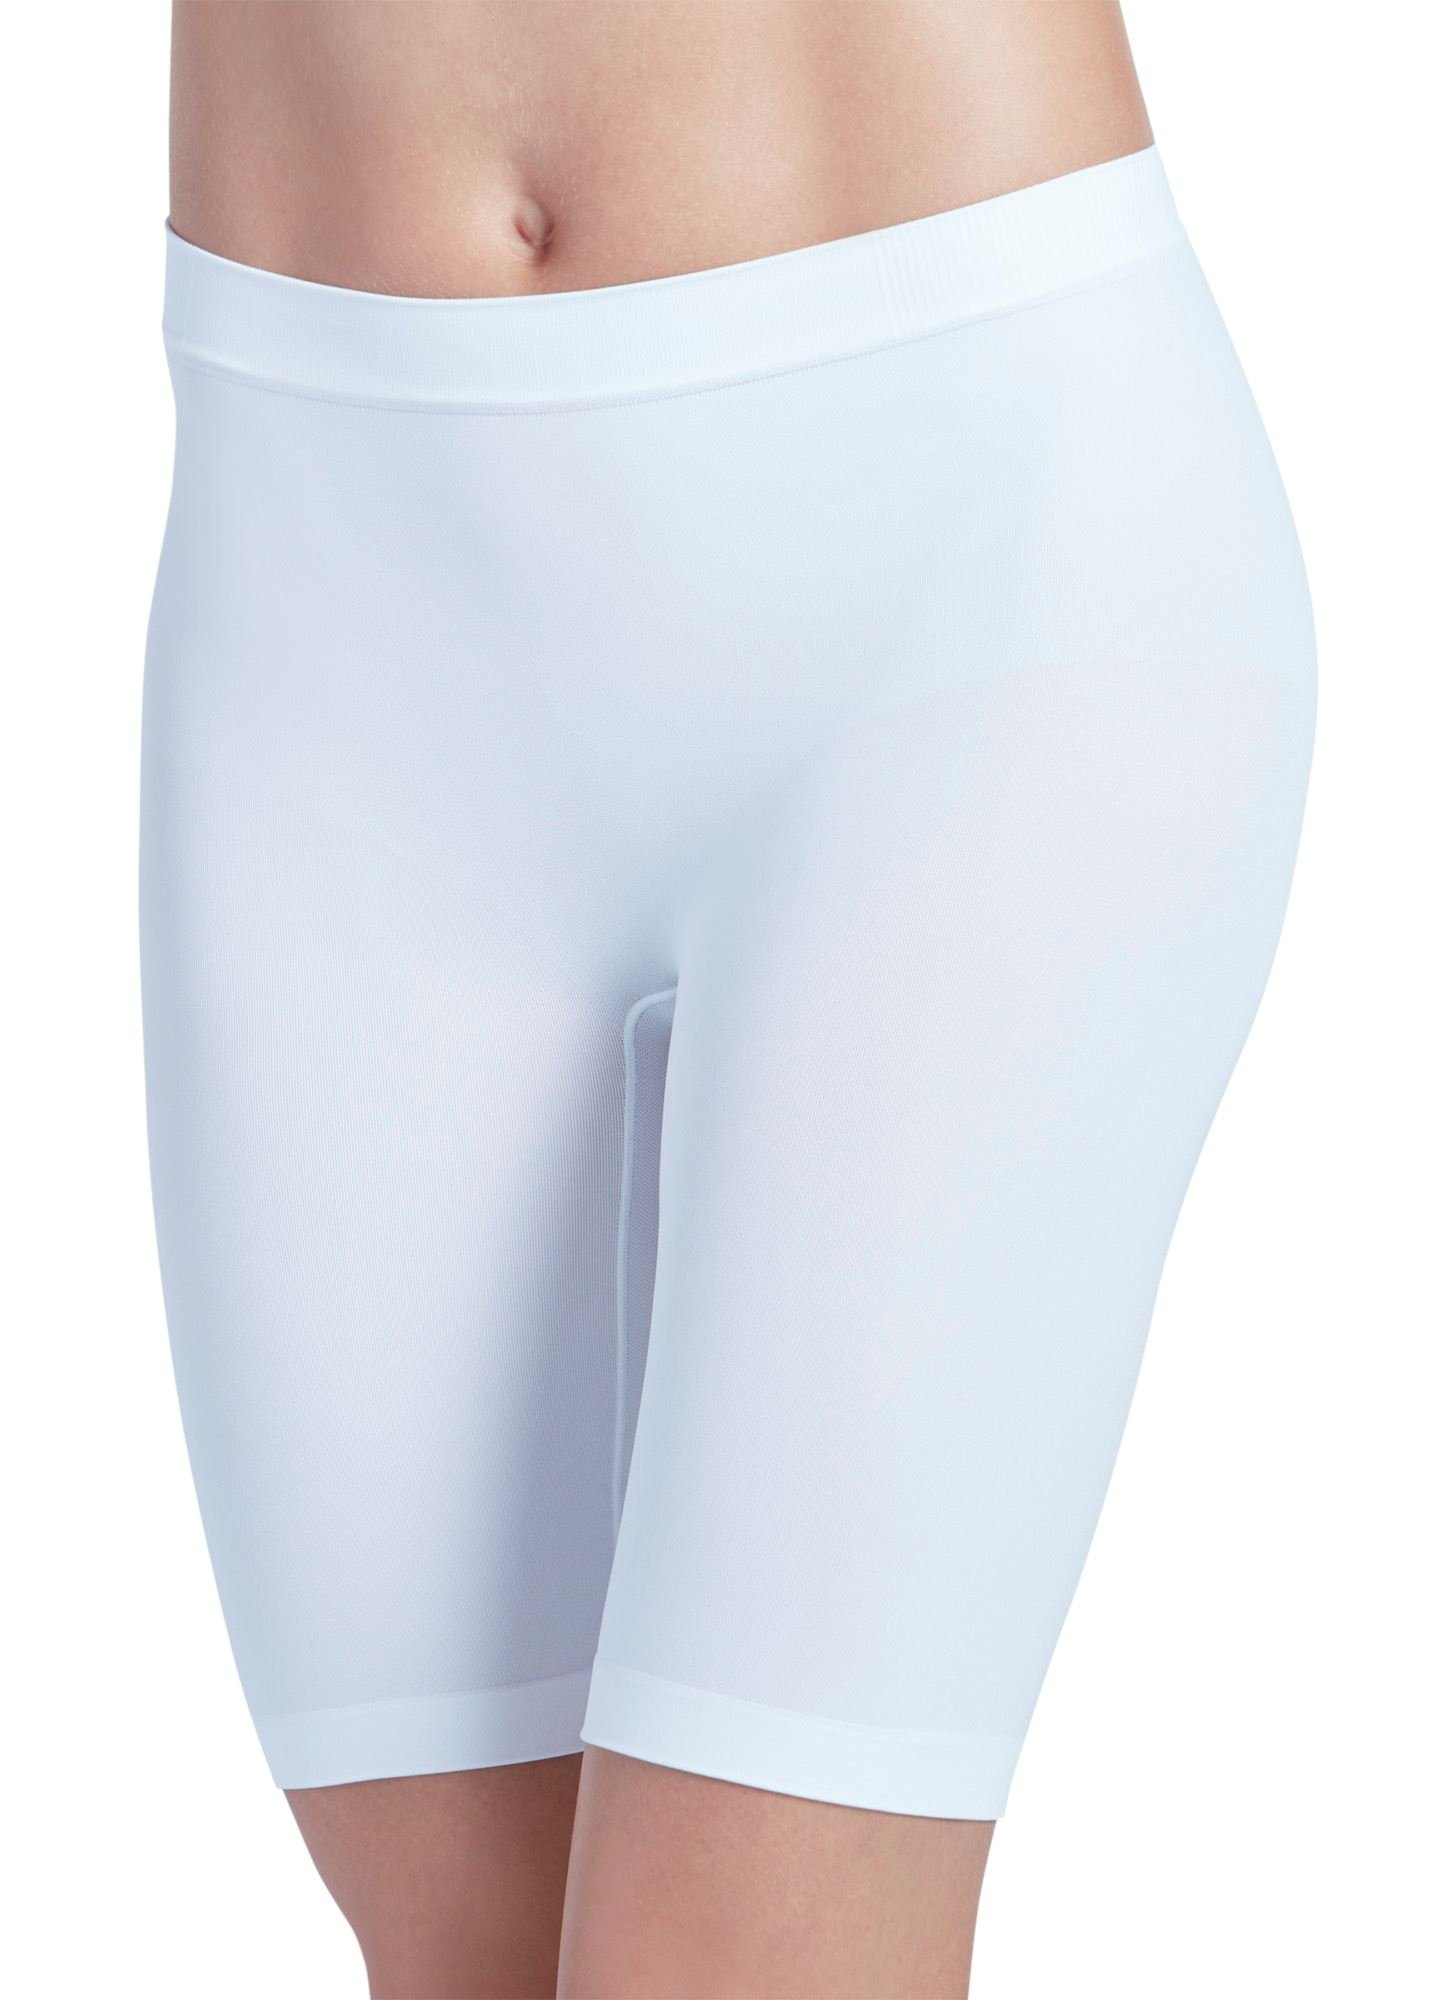 Jockey Women's Underwear Skimmies Slipshort, white, 2XL